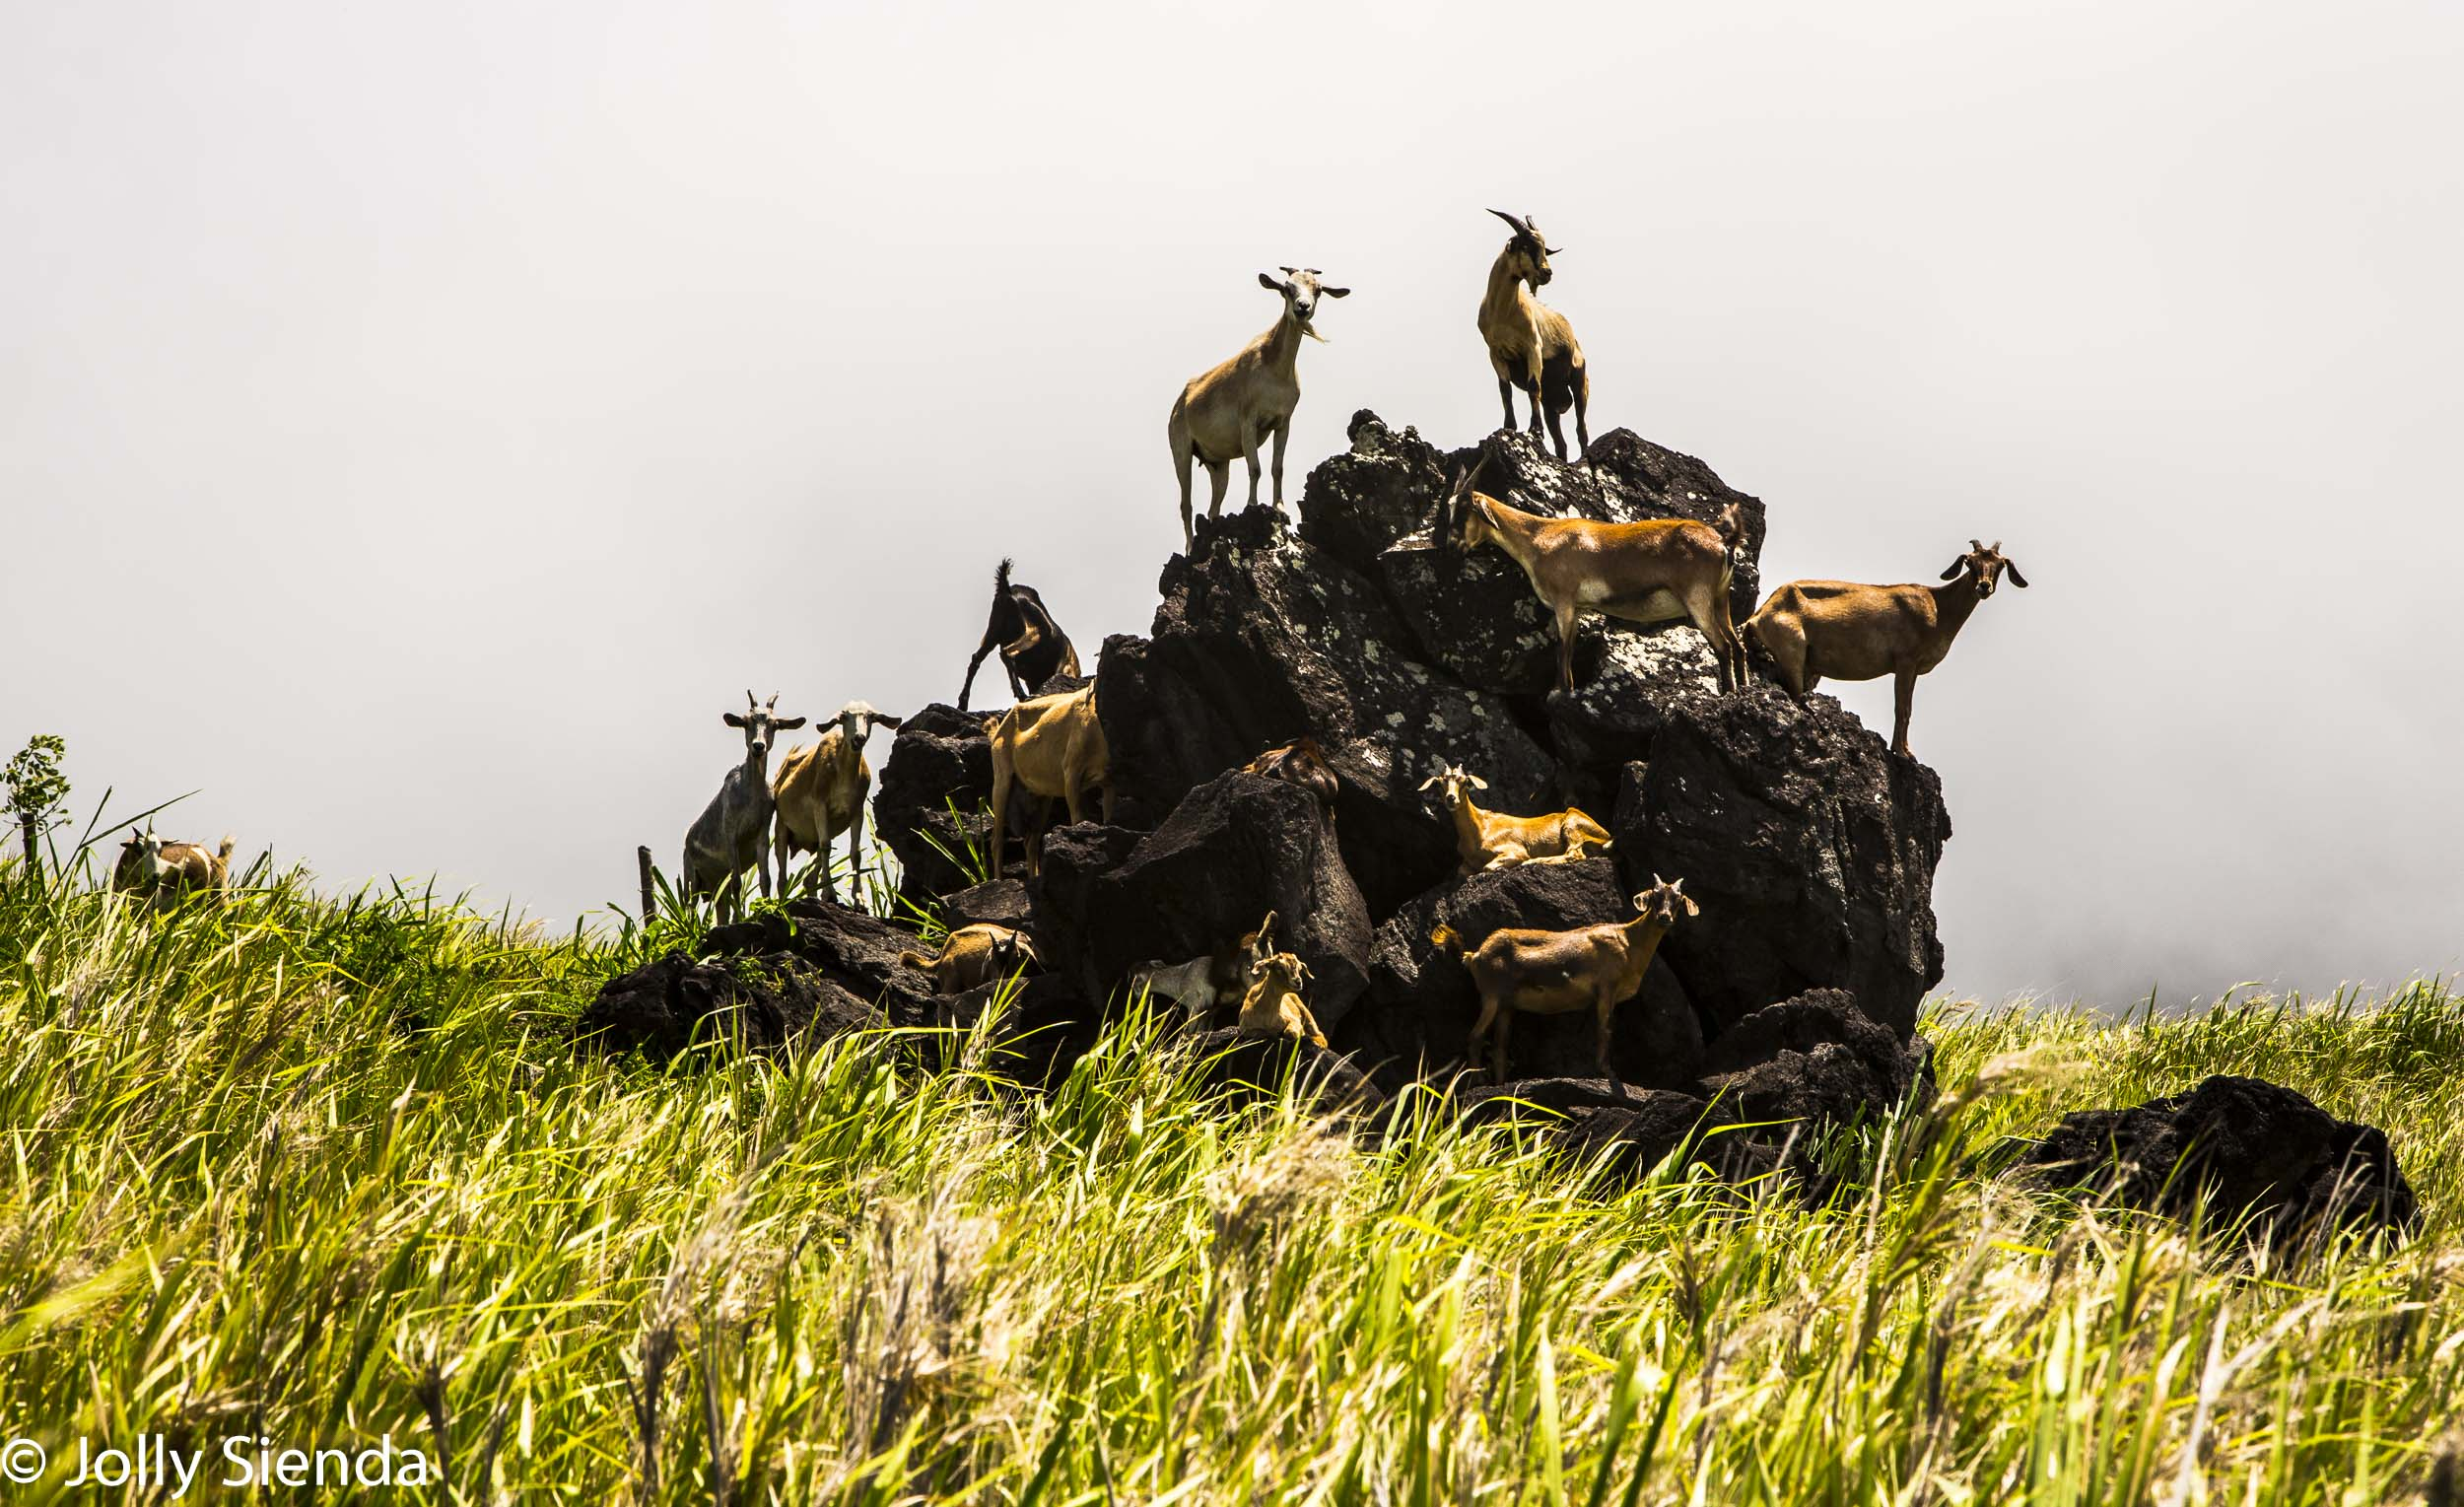 Herd of goats stand on a large lava rock, St. Kitts, Caribbean.